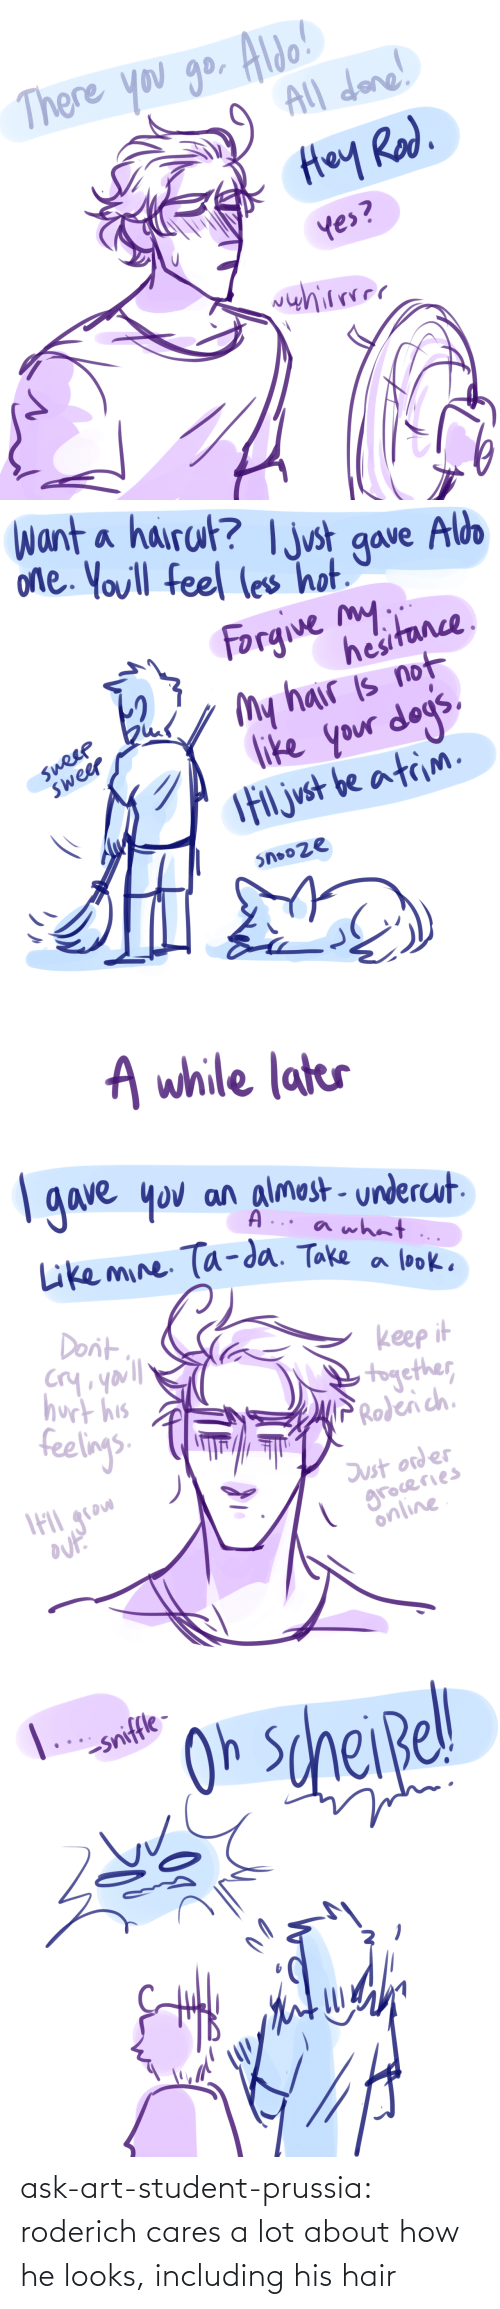 art: ask-art-student-prussia:  roderich cares a lot about how he looks, including his hair